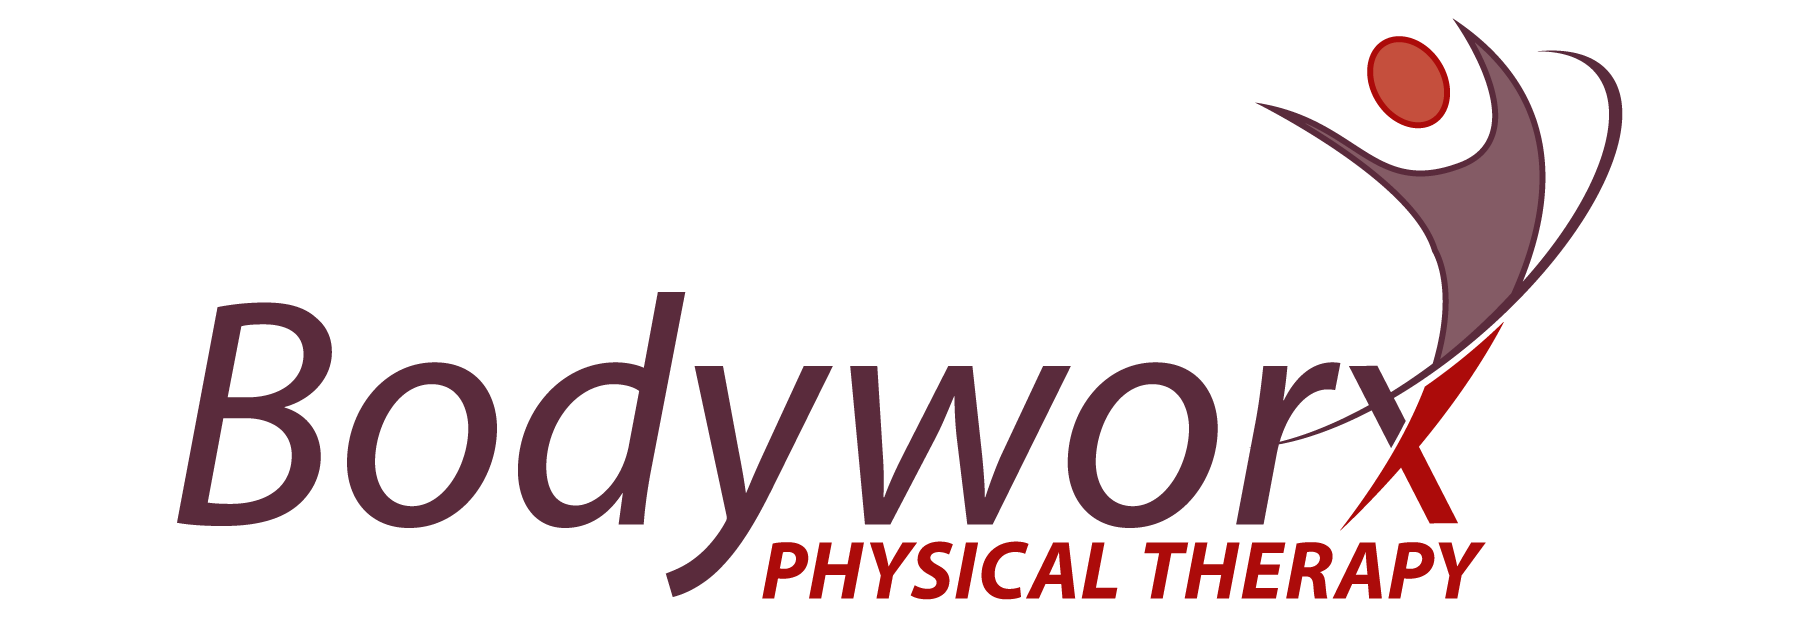 Bodyworx Physical Therapy